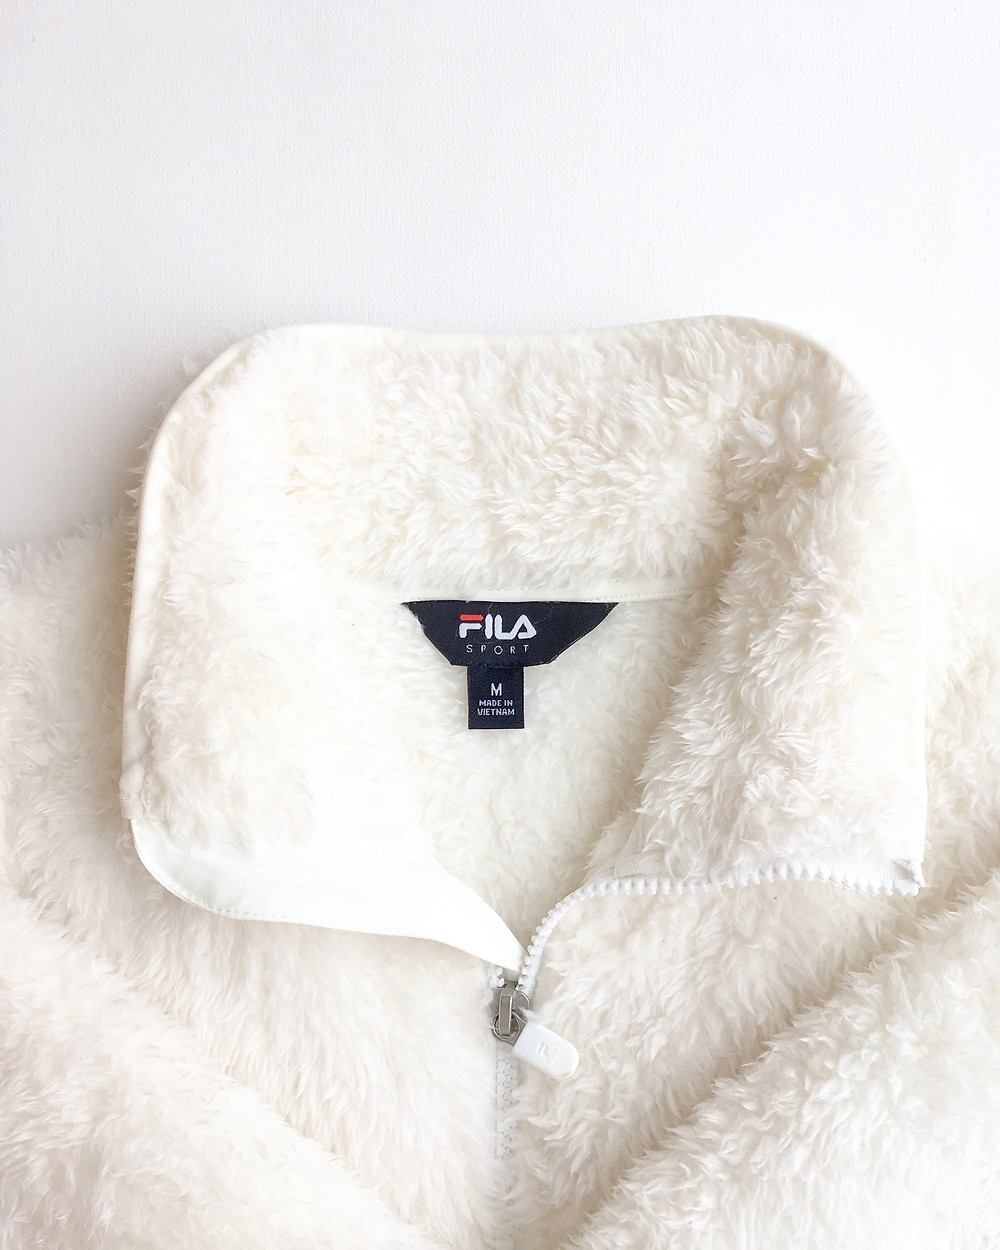 Heartthrob Studio March Essentials; FILA SPORT Sherpa Fleece